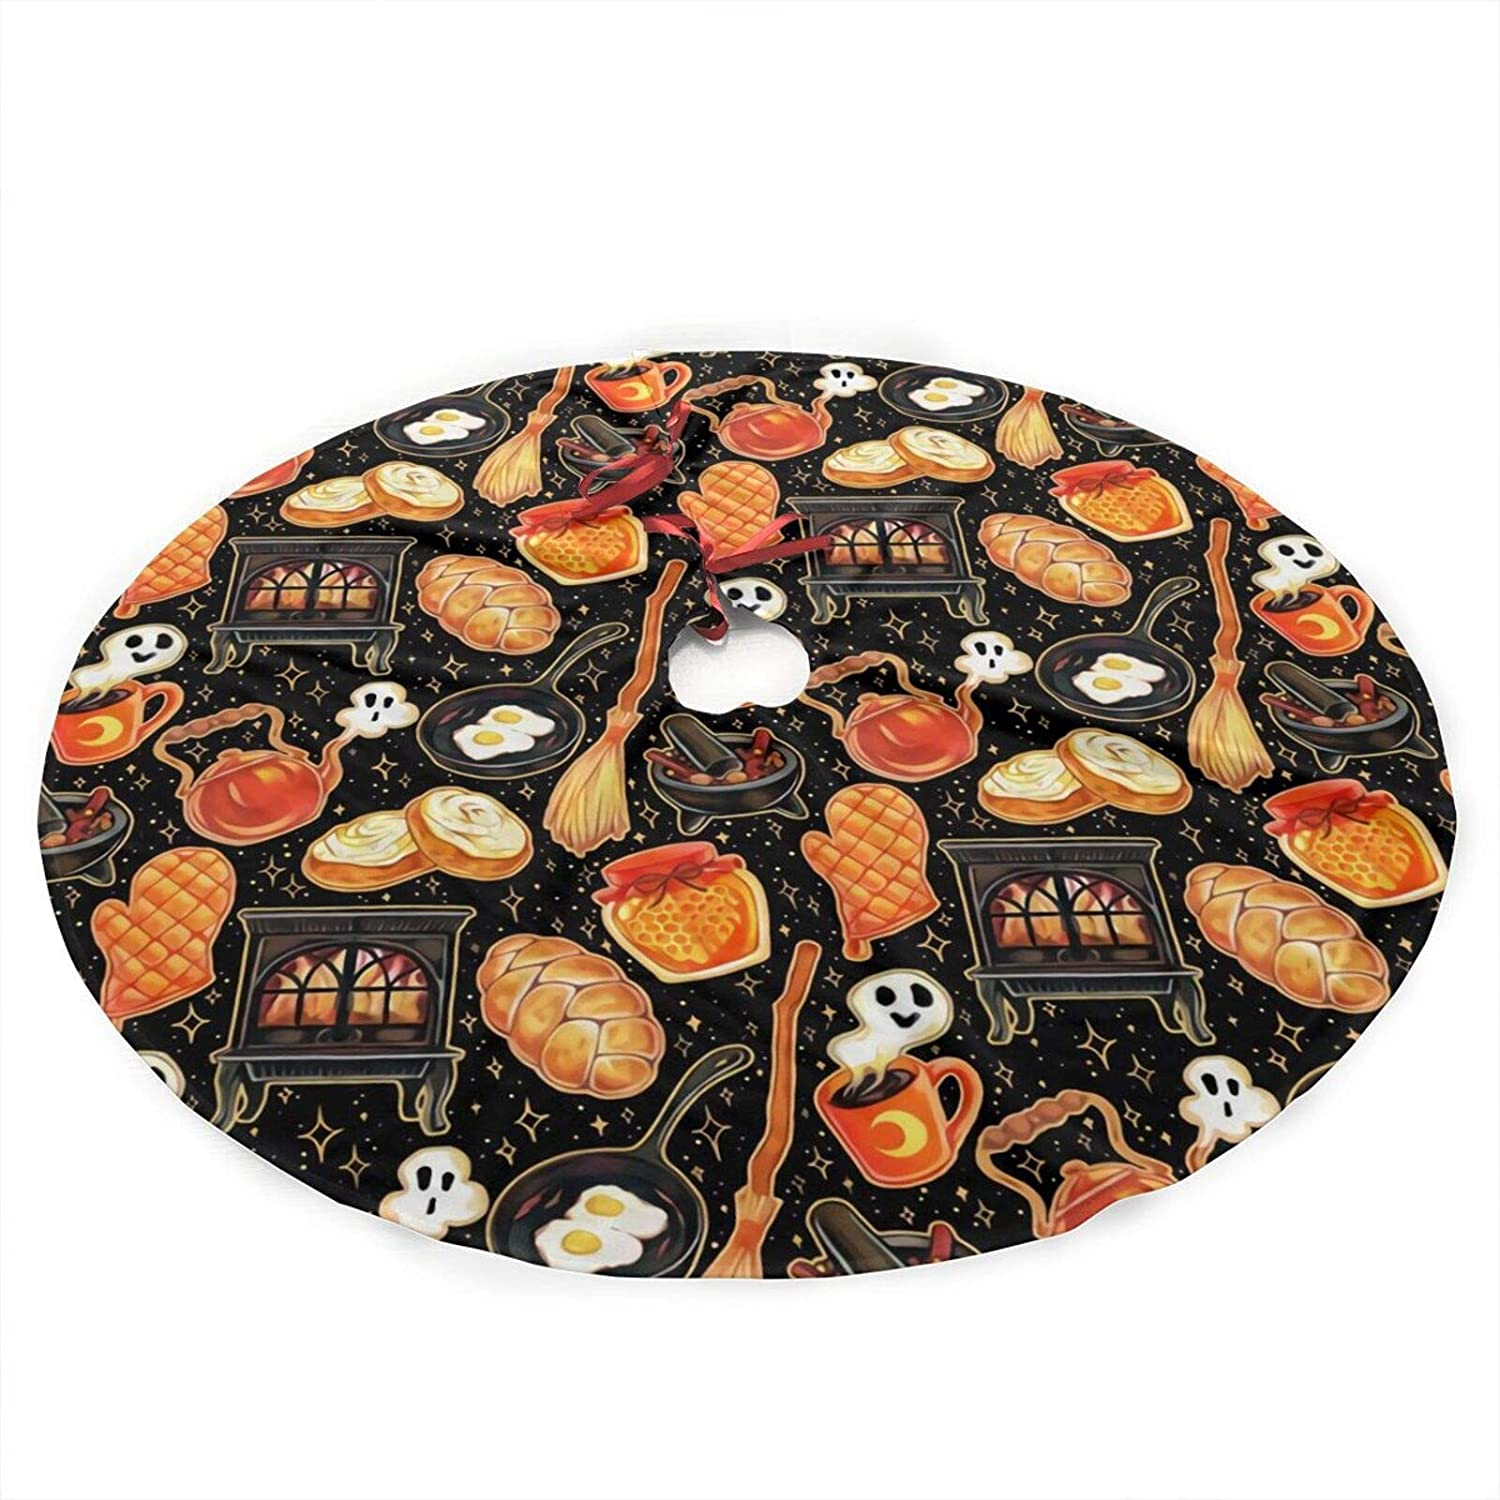 antcreptson Kitchen Witch Supplies On Black Christmas Tree Skirt, 36 inches Xmas Holiday Decoration